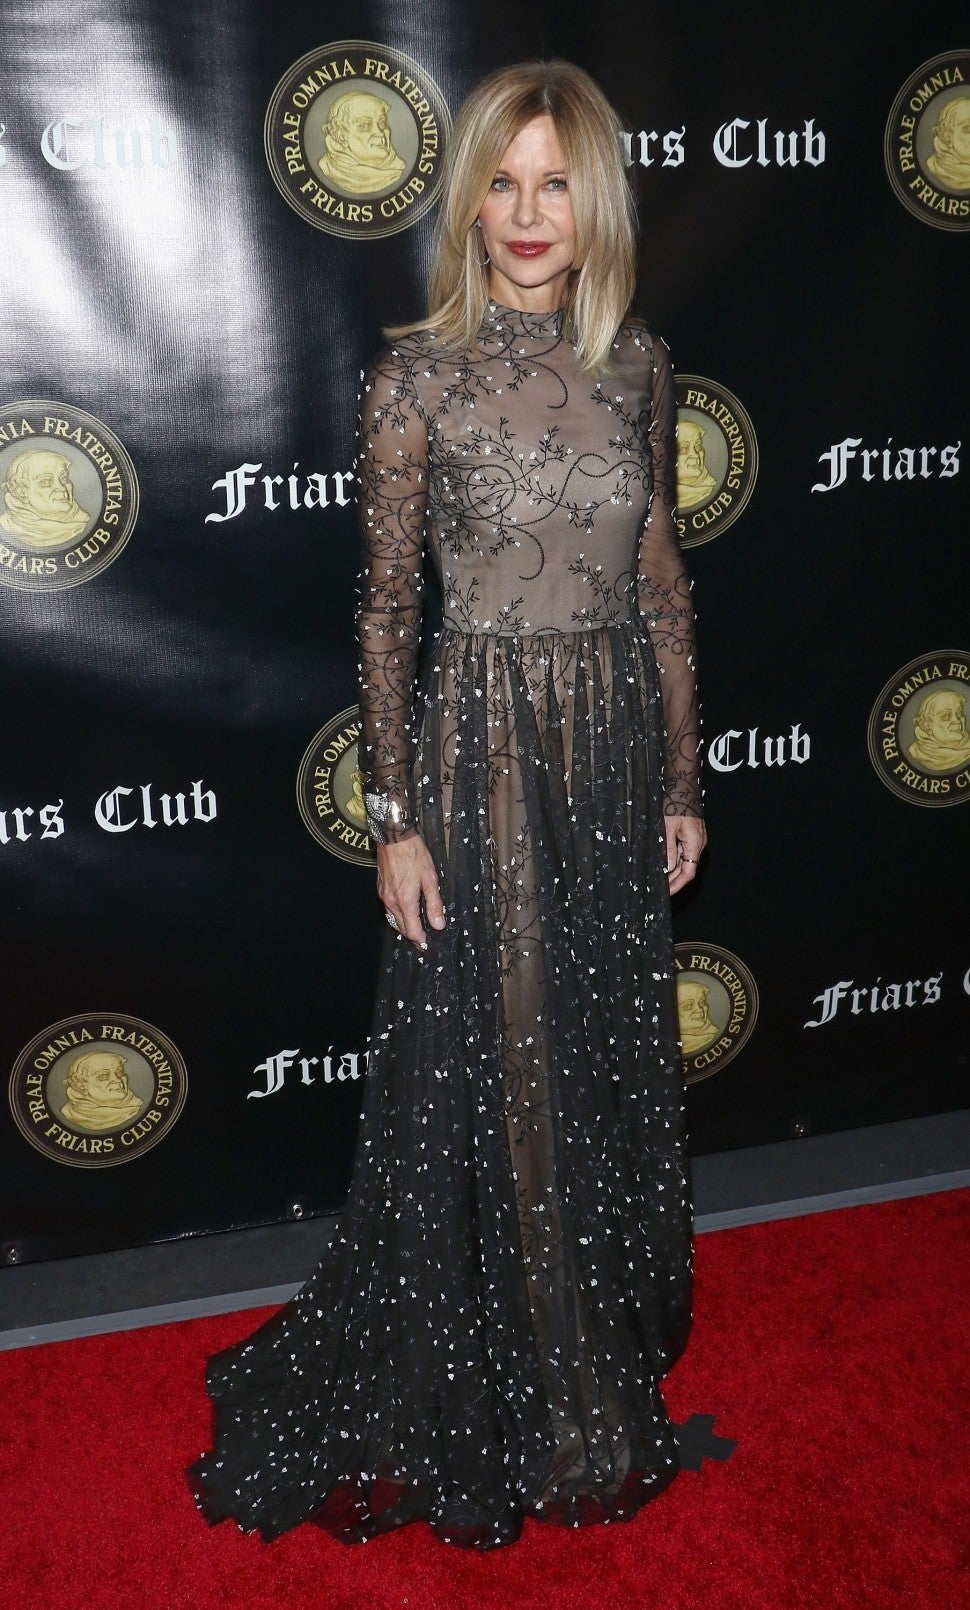 Meg Ryan attends the Friar's Club Entertainment Icon Award at The Ziegfeld Ballroom on November 12, 2018 in New York City.